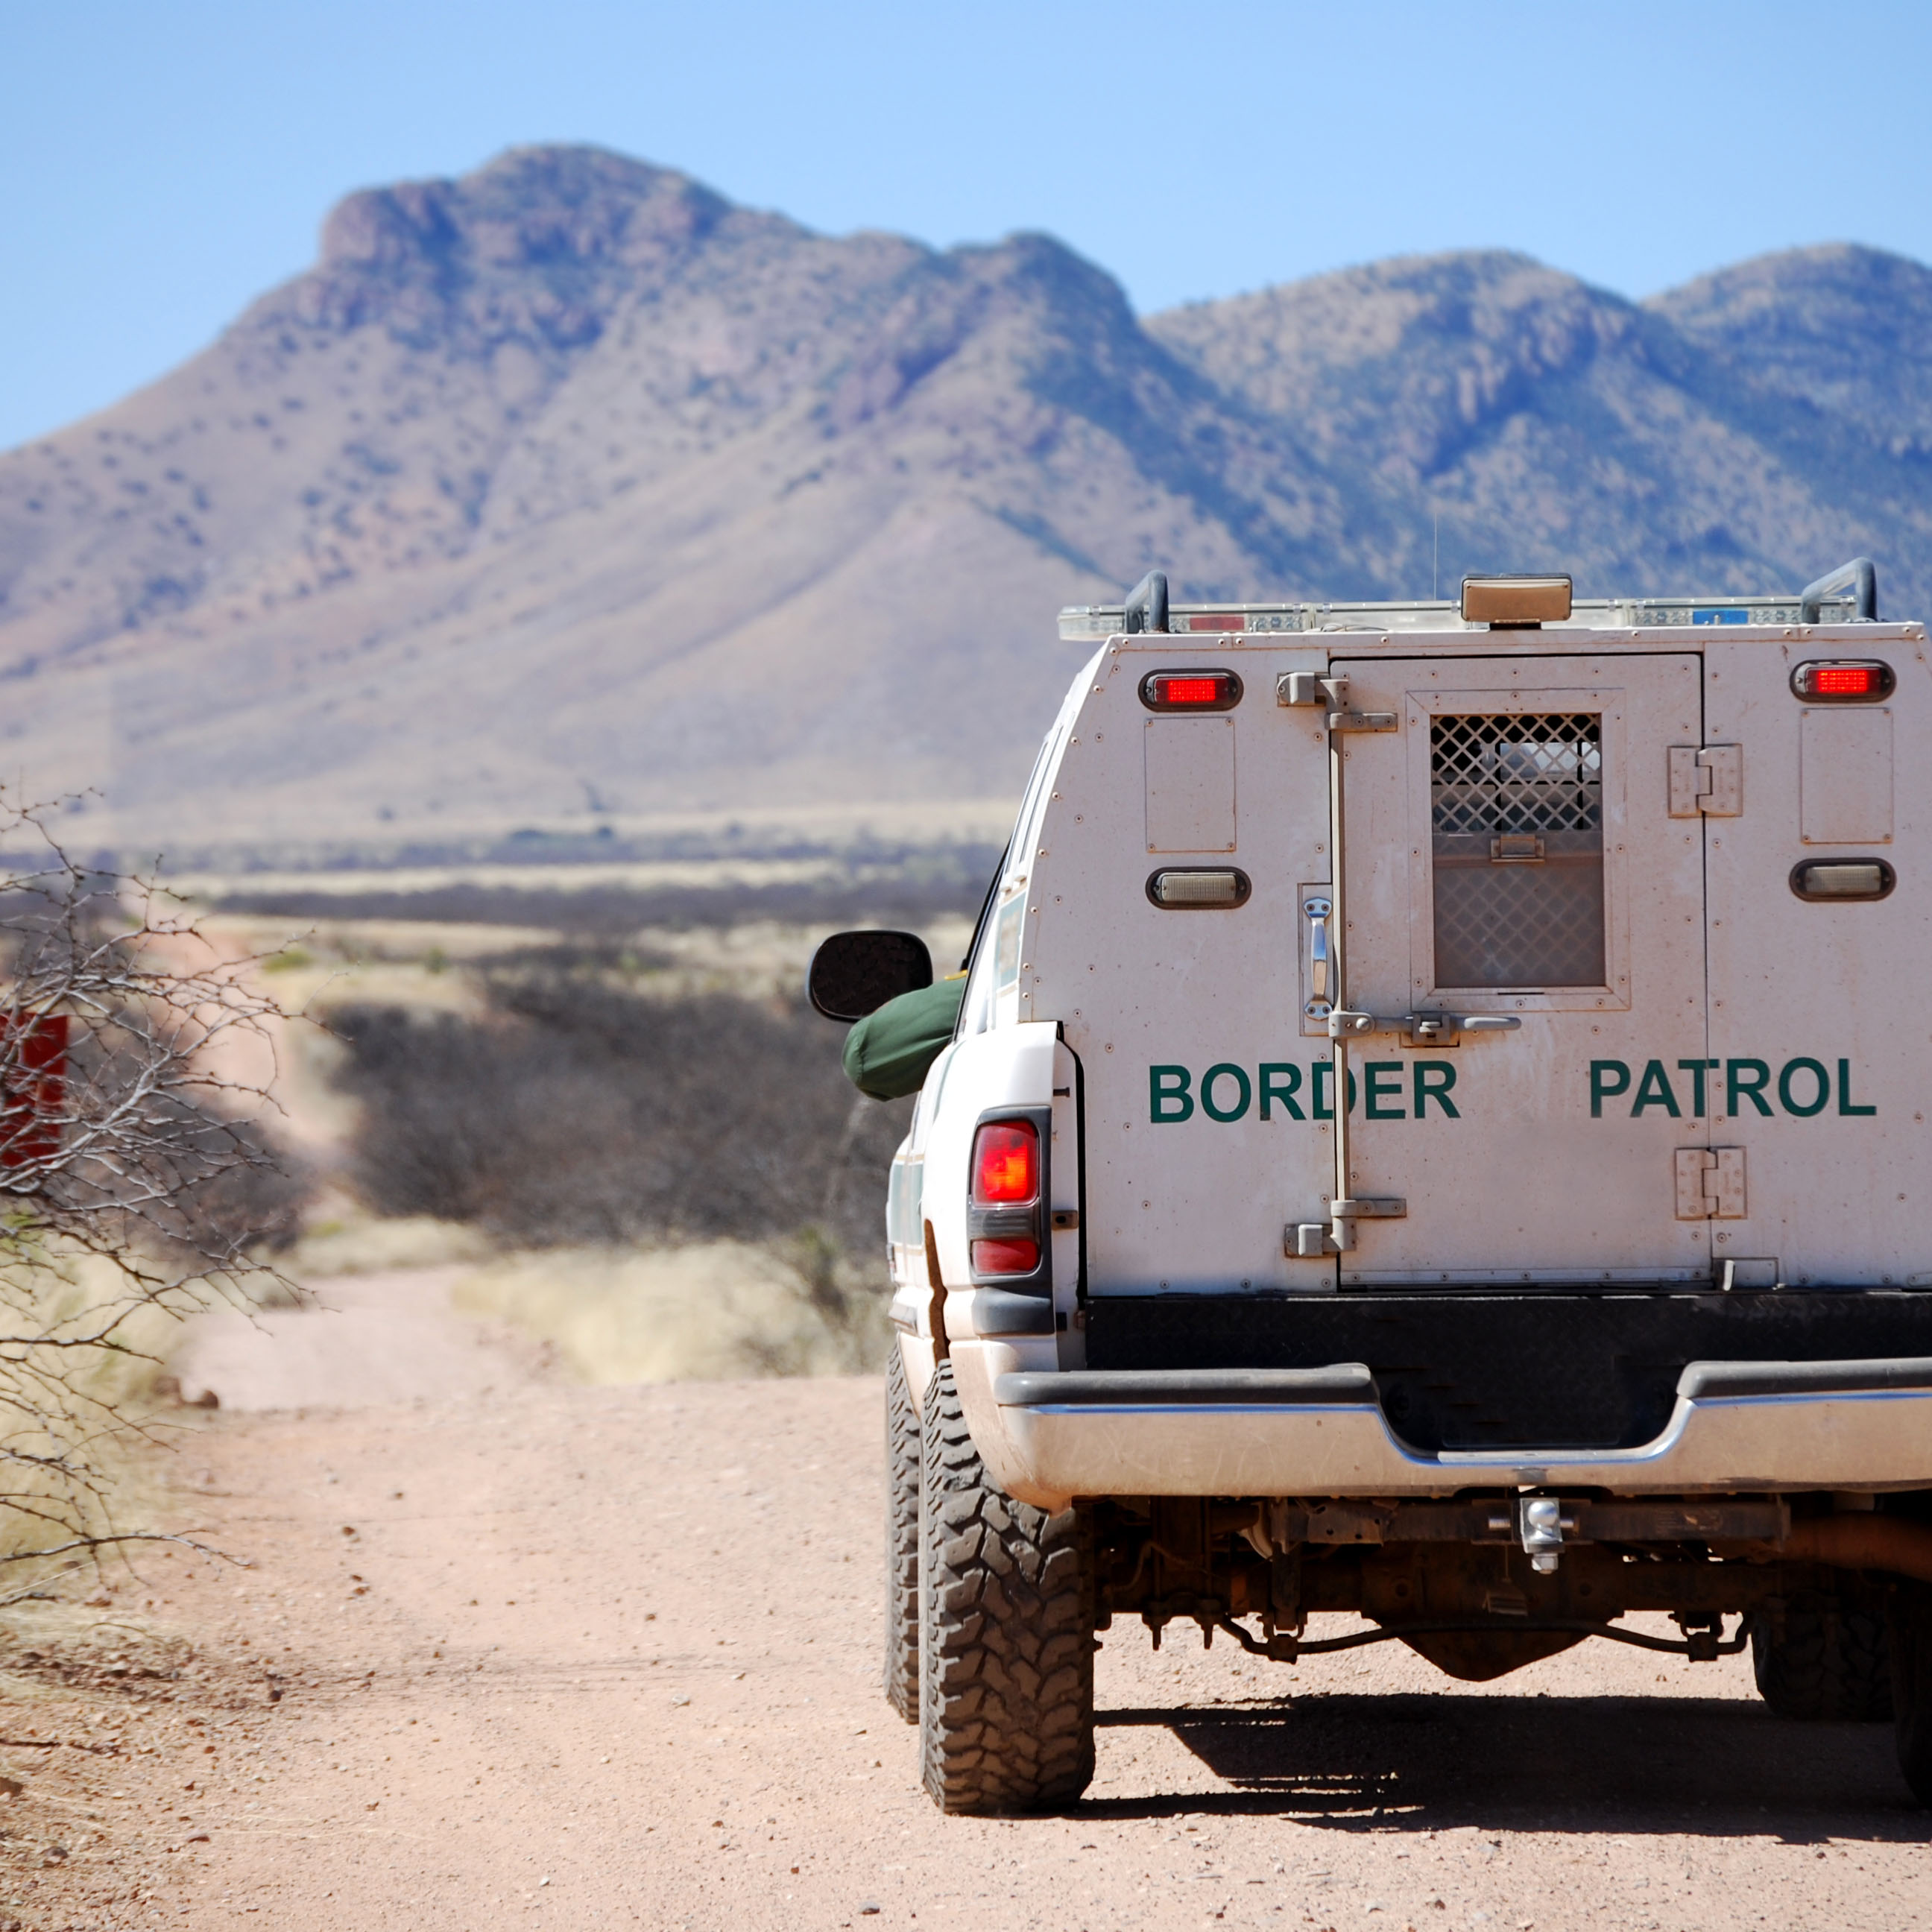 Back of a border patrol truck driving on a dirt road along the Mexican border in Arizona, with mountains in the background